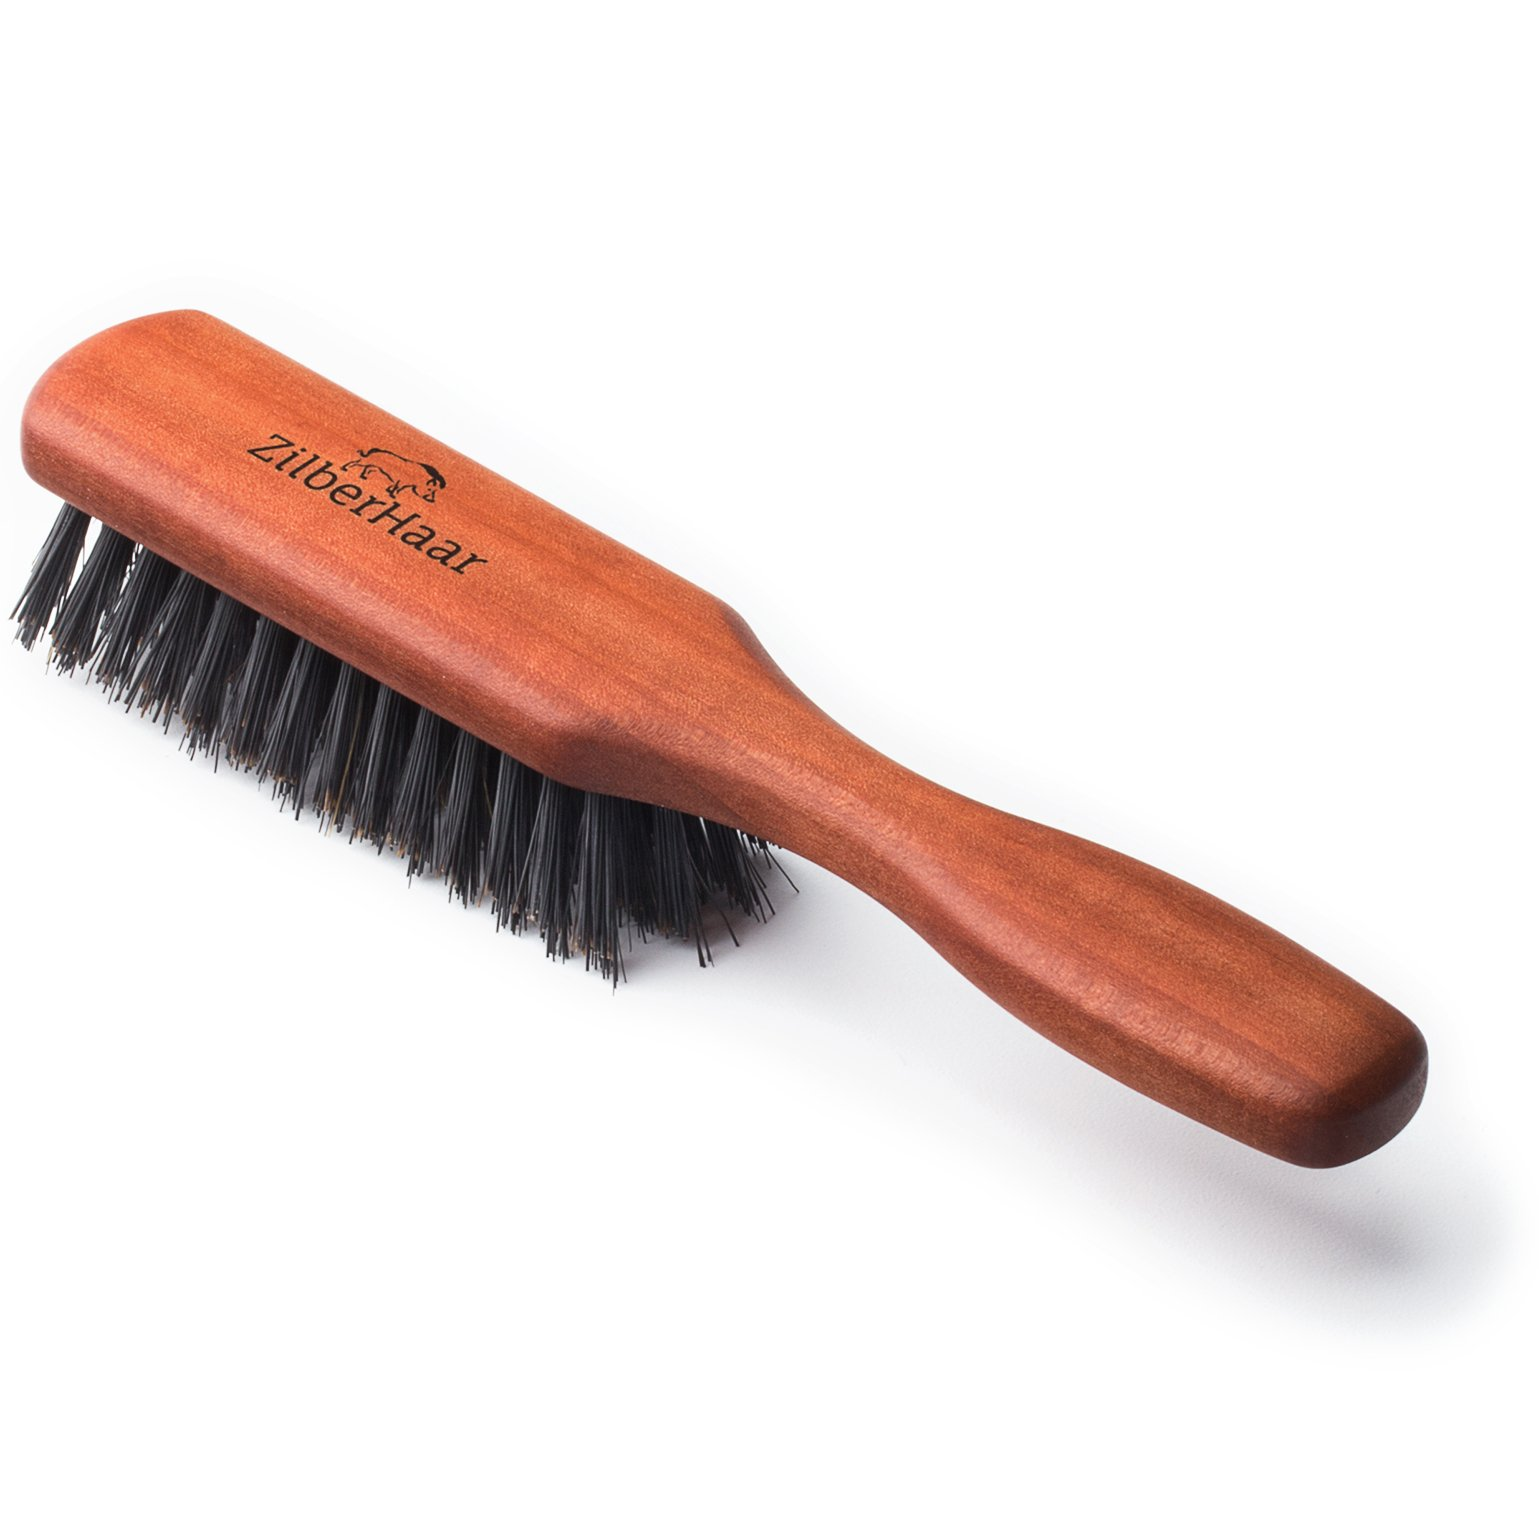 Beard Brush by ZilberHaar Pure Boar Bristles Natural Firm Hog Hair and Pearwood Works With All Beard Balms and Beard Oils Exfoliates Skin Helps Softening and Conditioning Itchy Beards Great for Travel